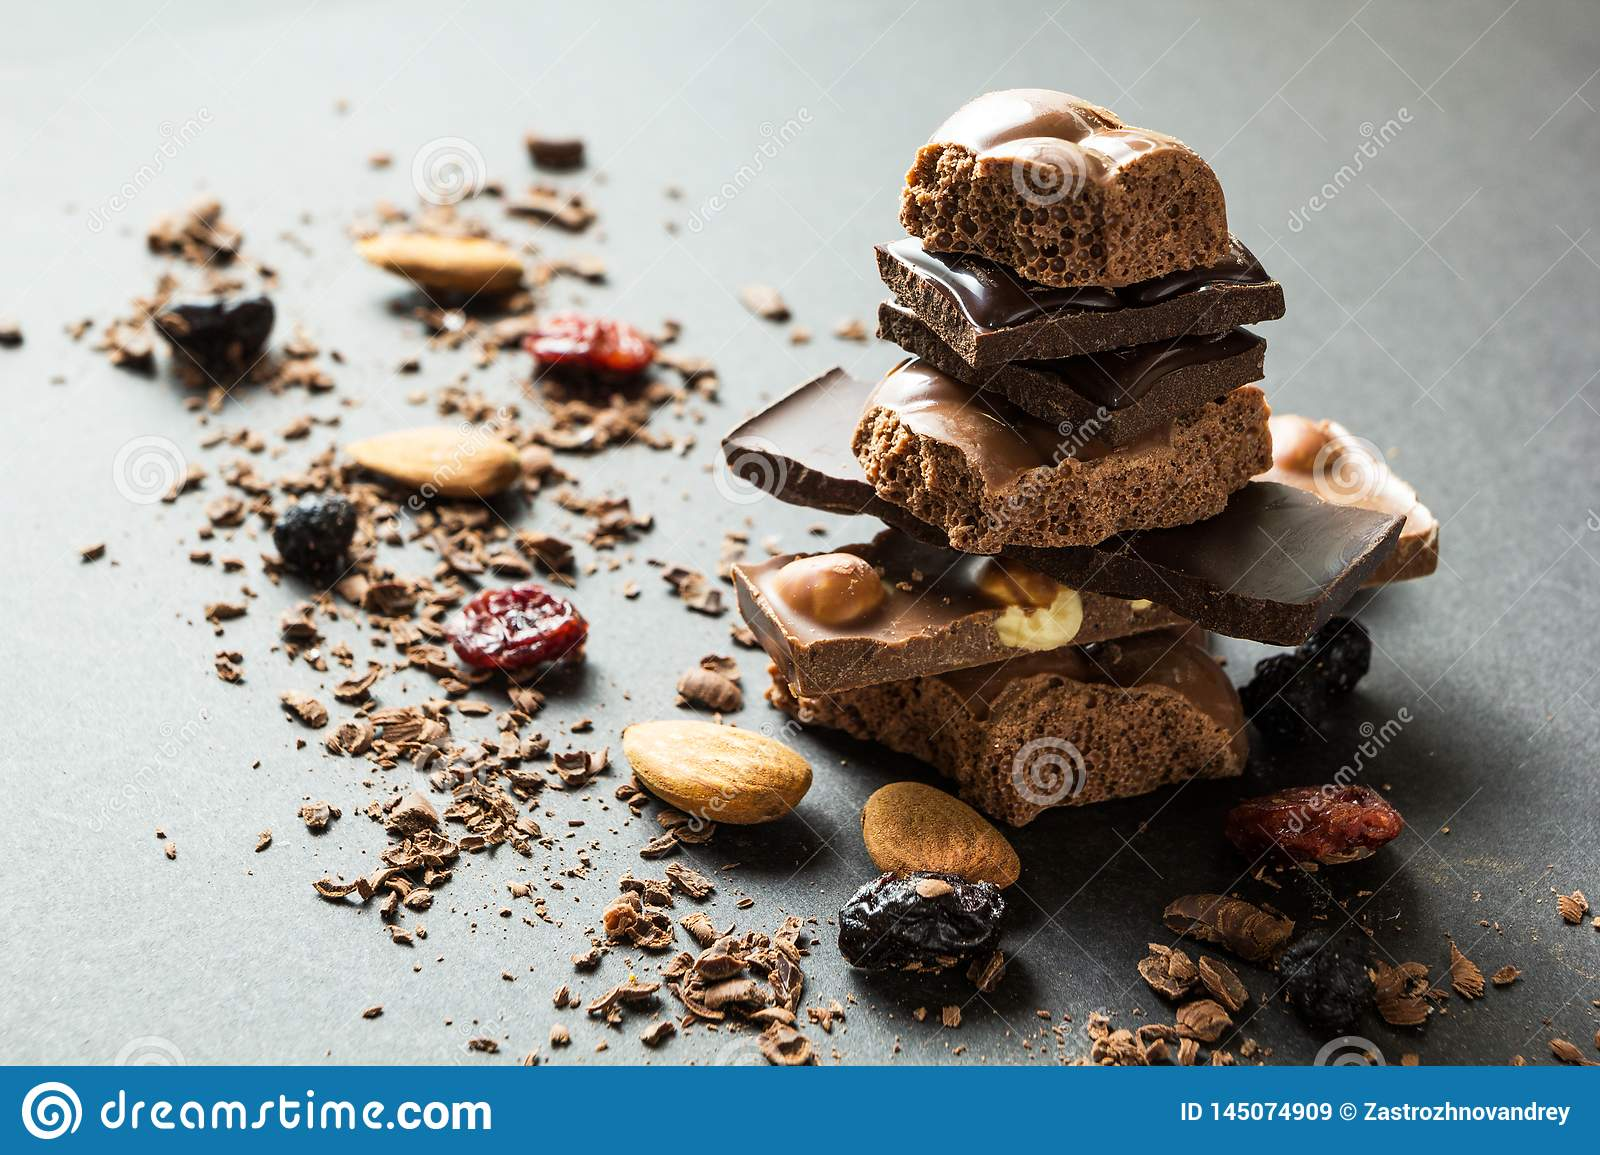 Pyramid of chocolate and dried fruits on a black background